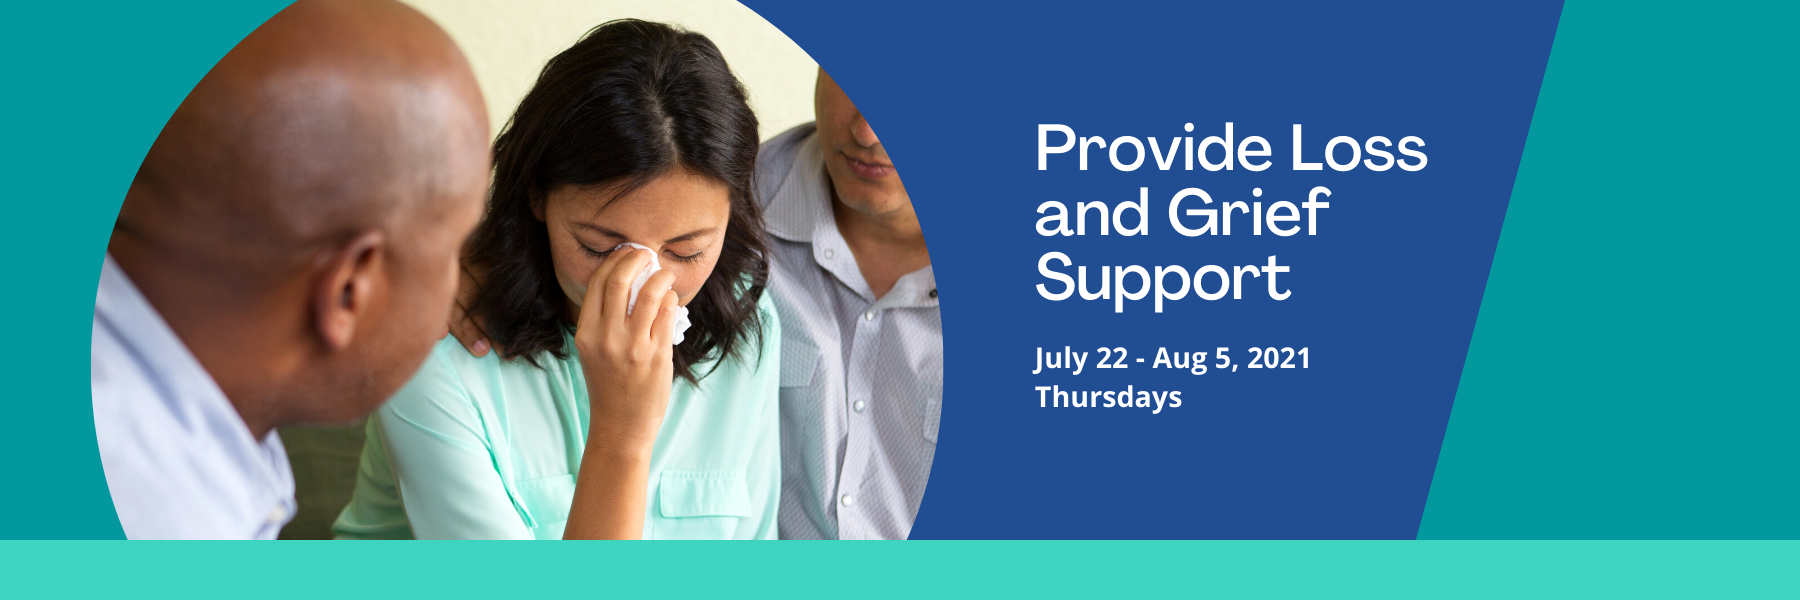 Provide_Loss_and_Grief_Support_website_banner_3